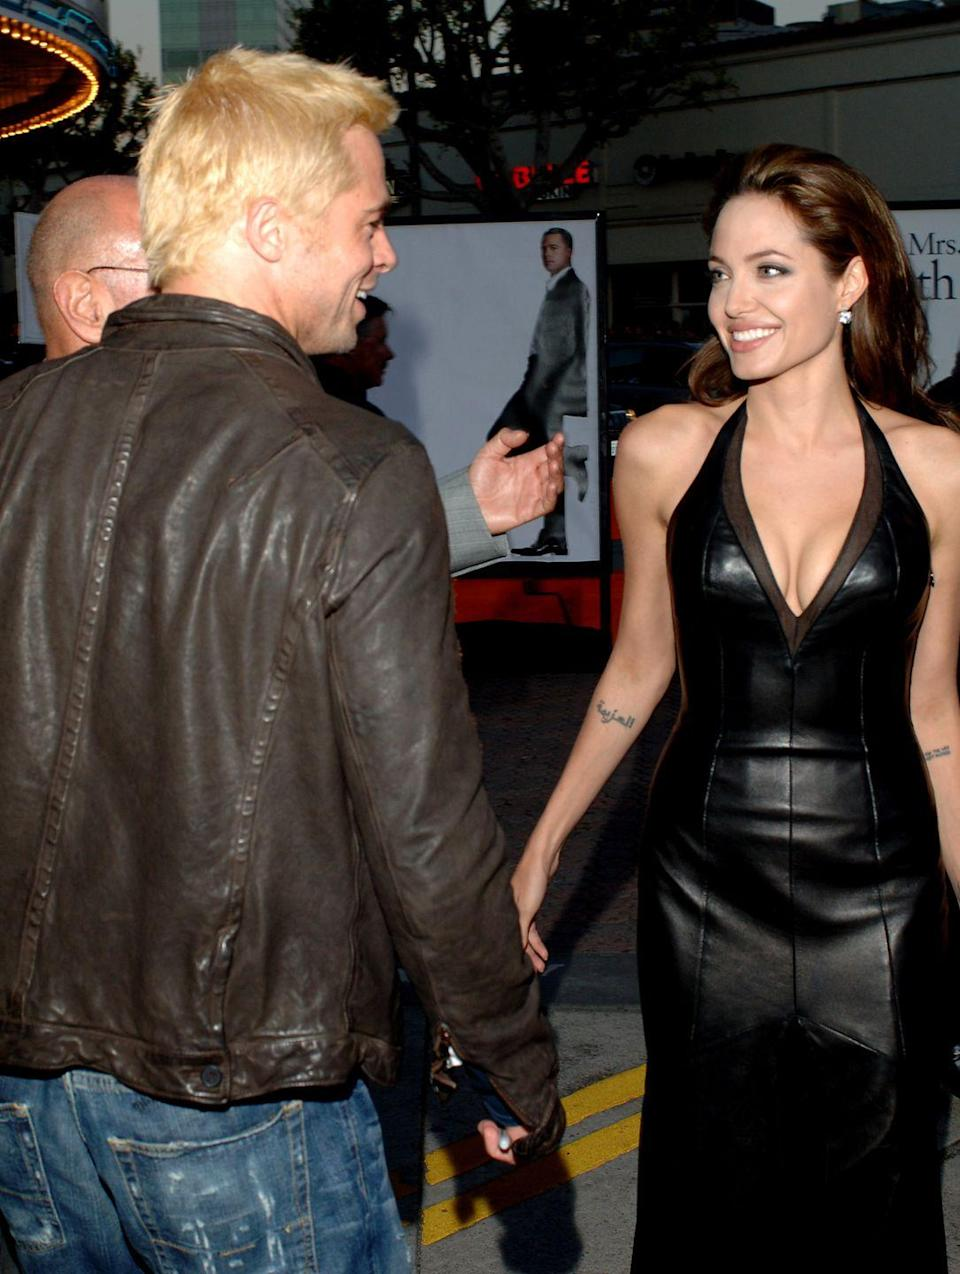 <p>The actors were careful not to get too close on the red carpet at the Los Angeles premiere of <em>Mr. and Mrs. Smith</em> in June 2005 as well. Still, the then-secret couple weren't fooling anyone.</p>